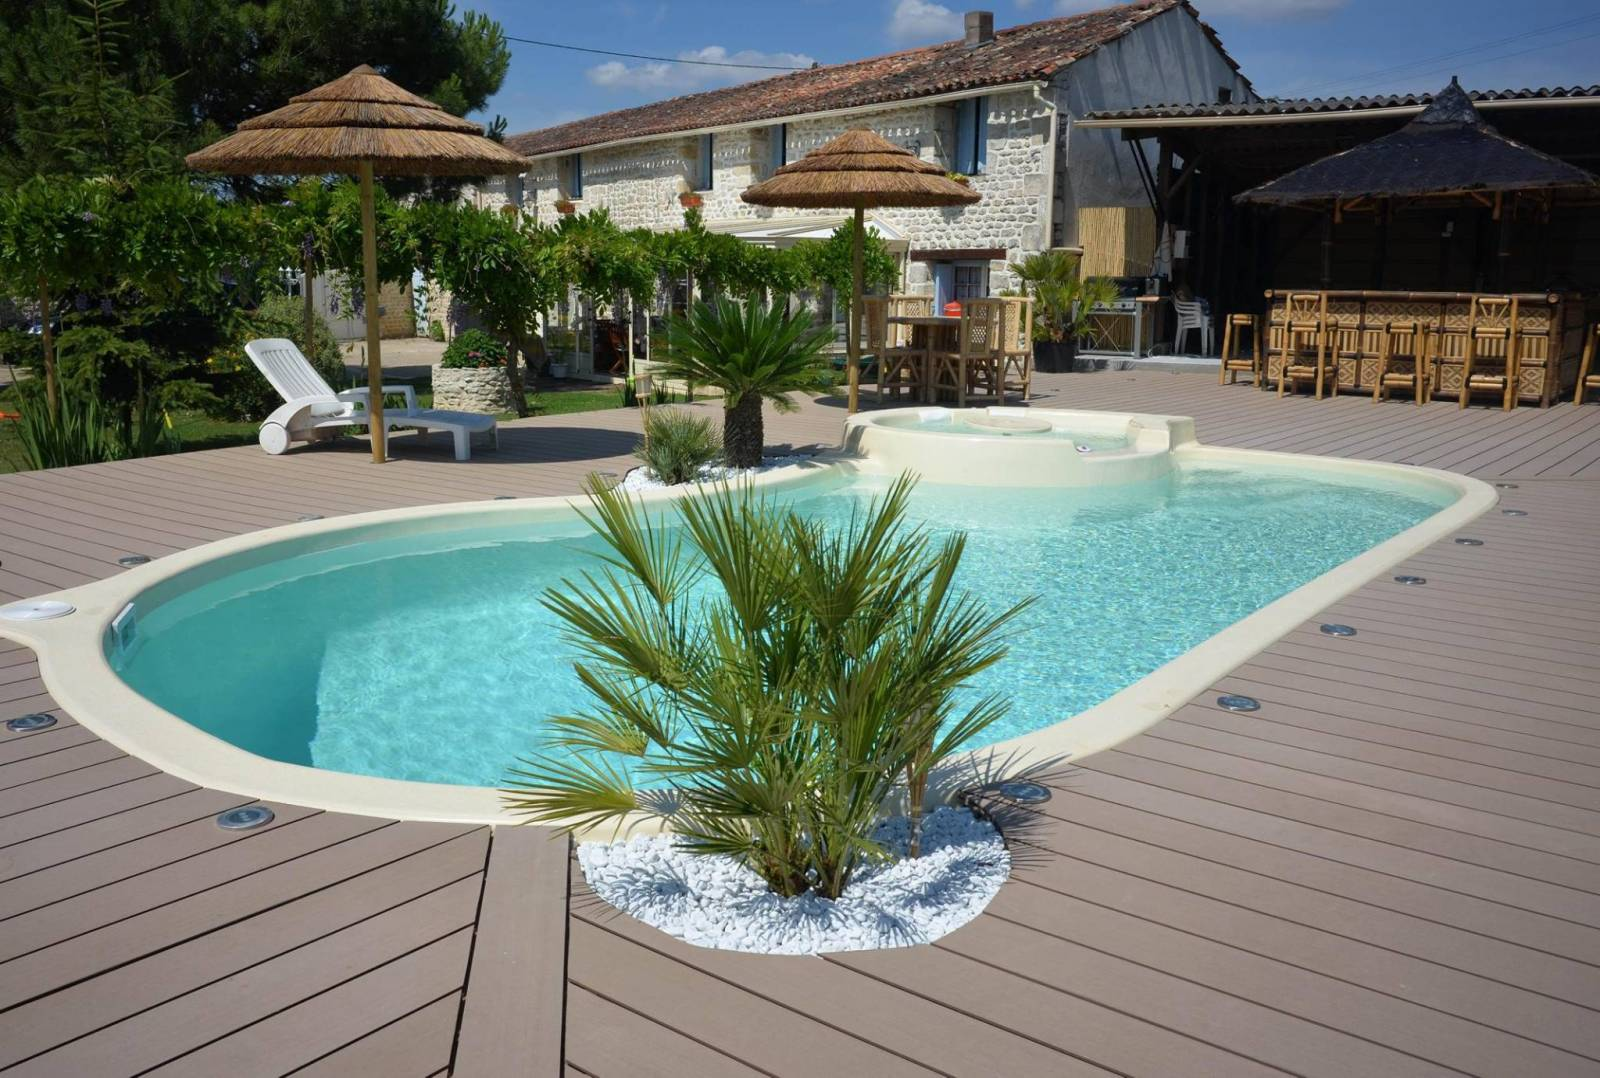 Fabricant de piscines coque montpellier freedom piscines for Spa avec piscine